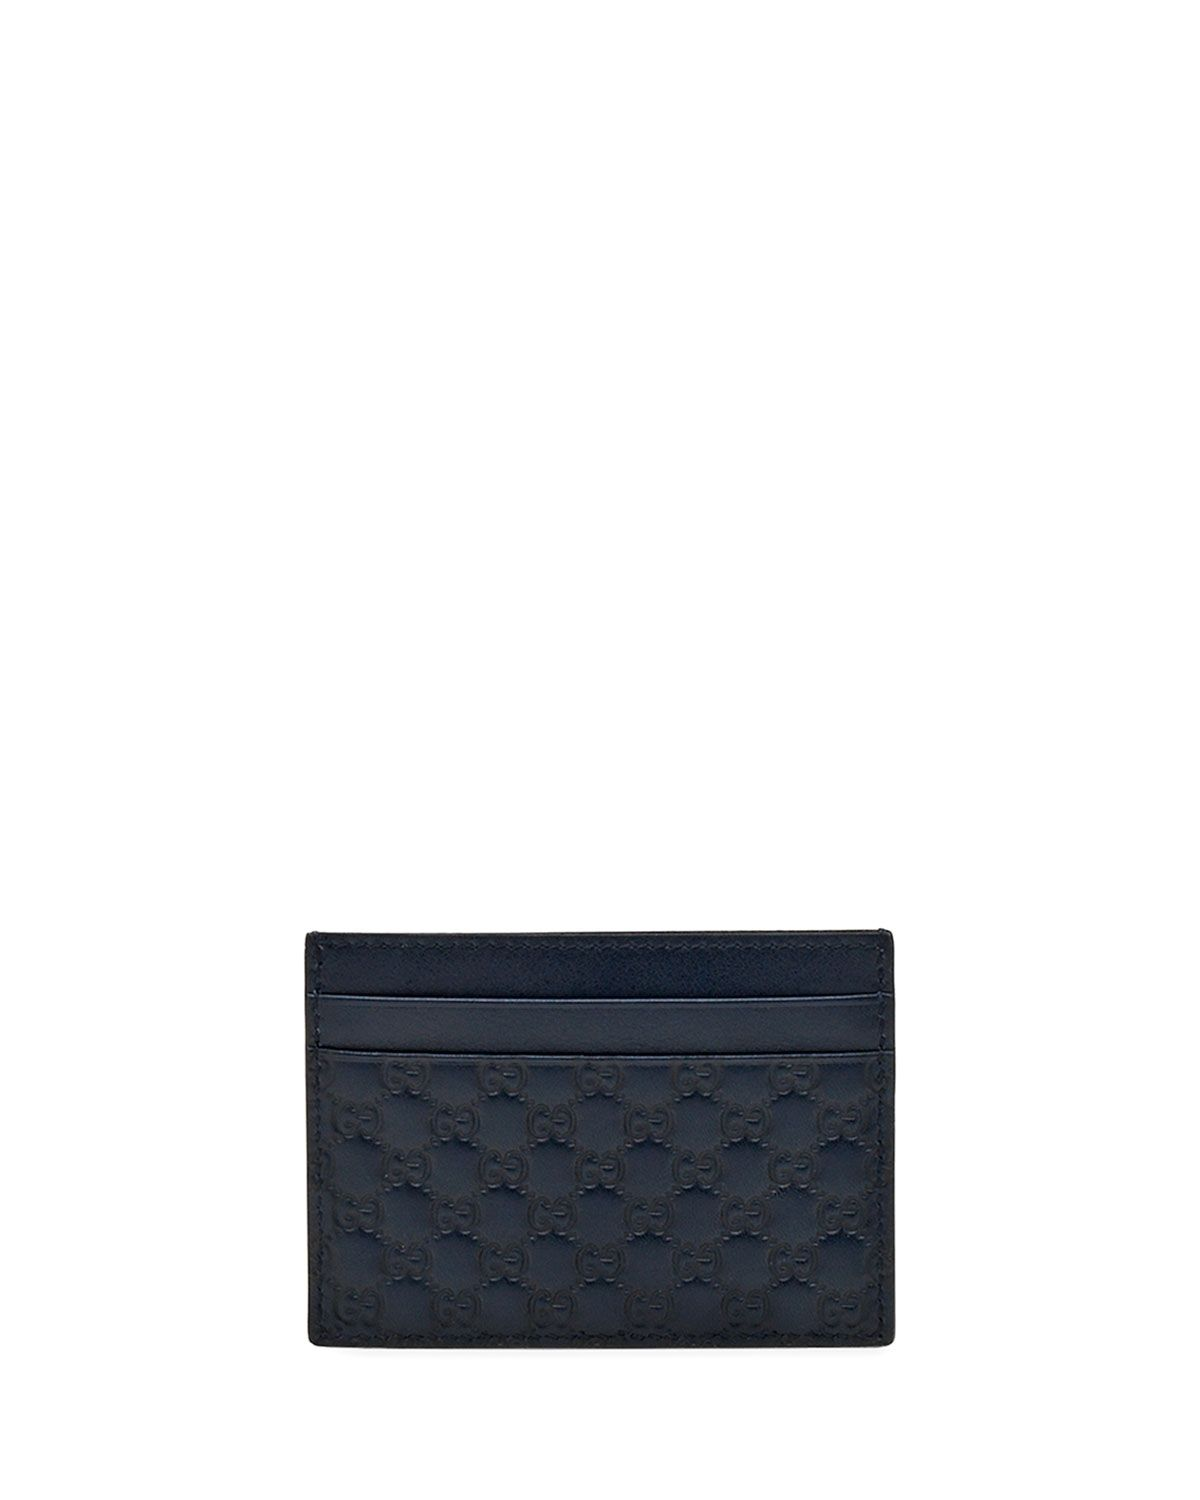 Micro Guccissima Card Case, Navy - Gucci | *Handbags, Wallets ...